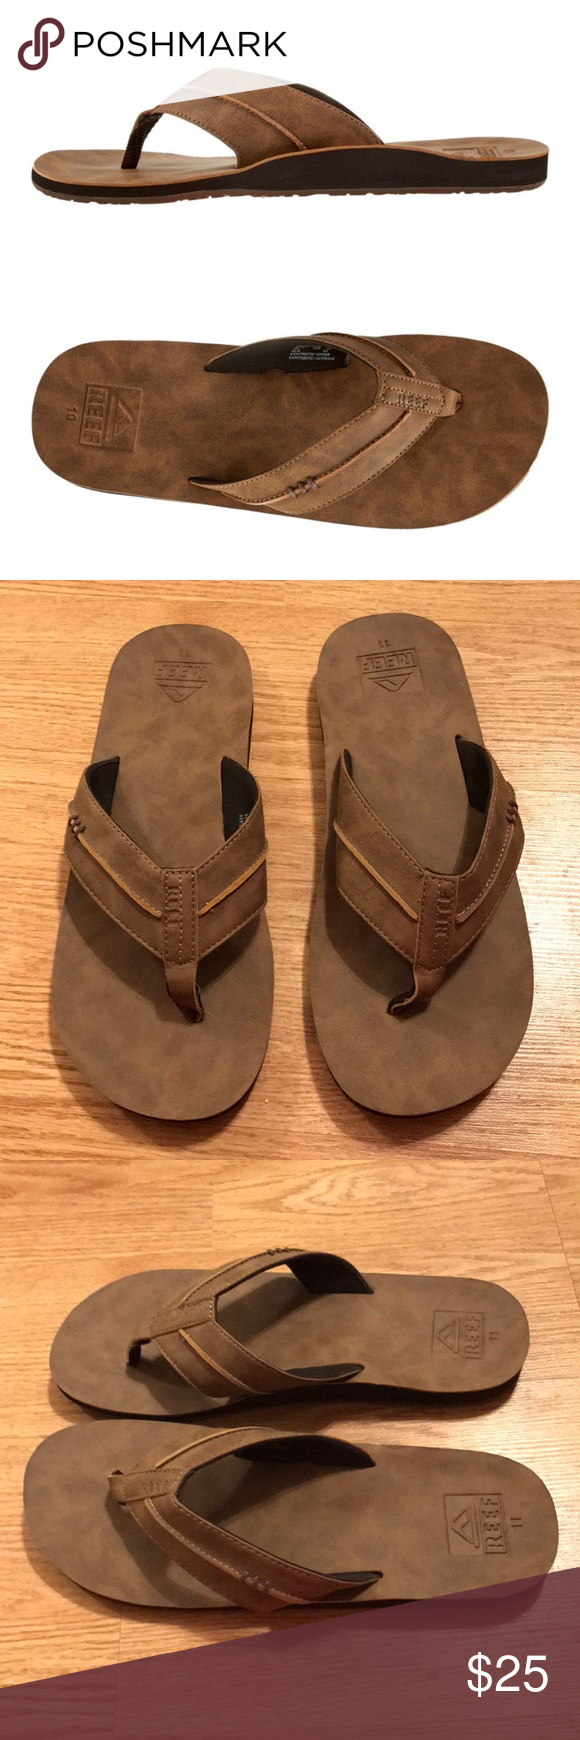 1b1c1a84bf47dd NWOT Reef Men s Marbea SL Flip Flops New with out tags. These have never  been worn. No stains or holes. Brown vegan leather sandals.